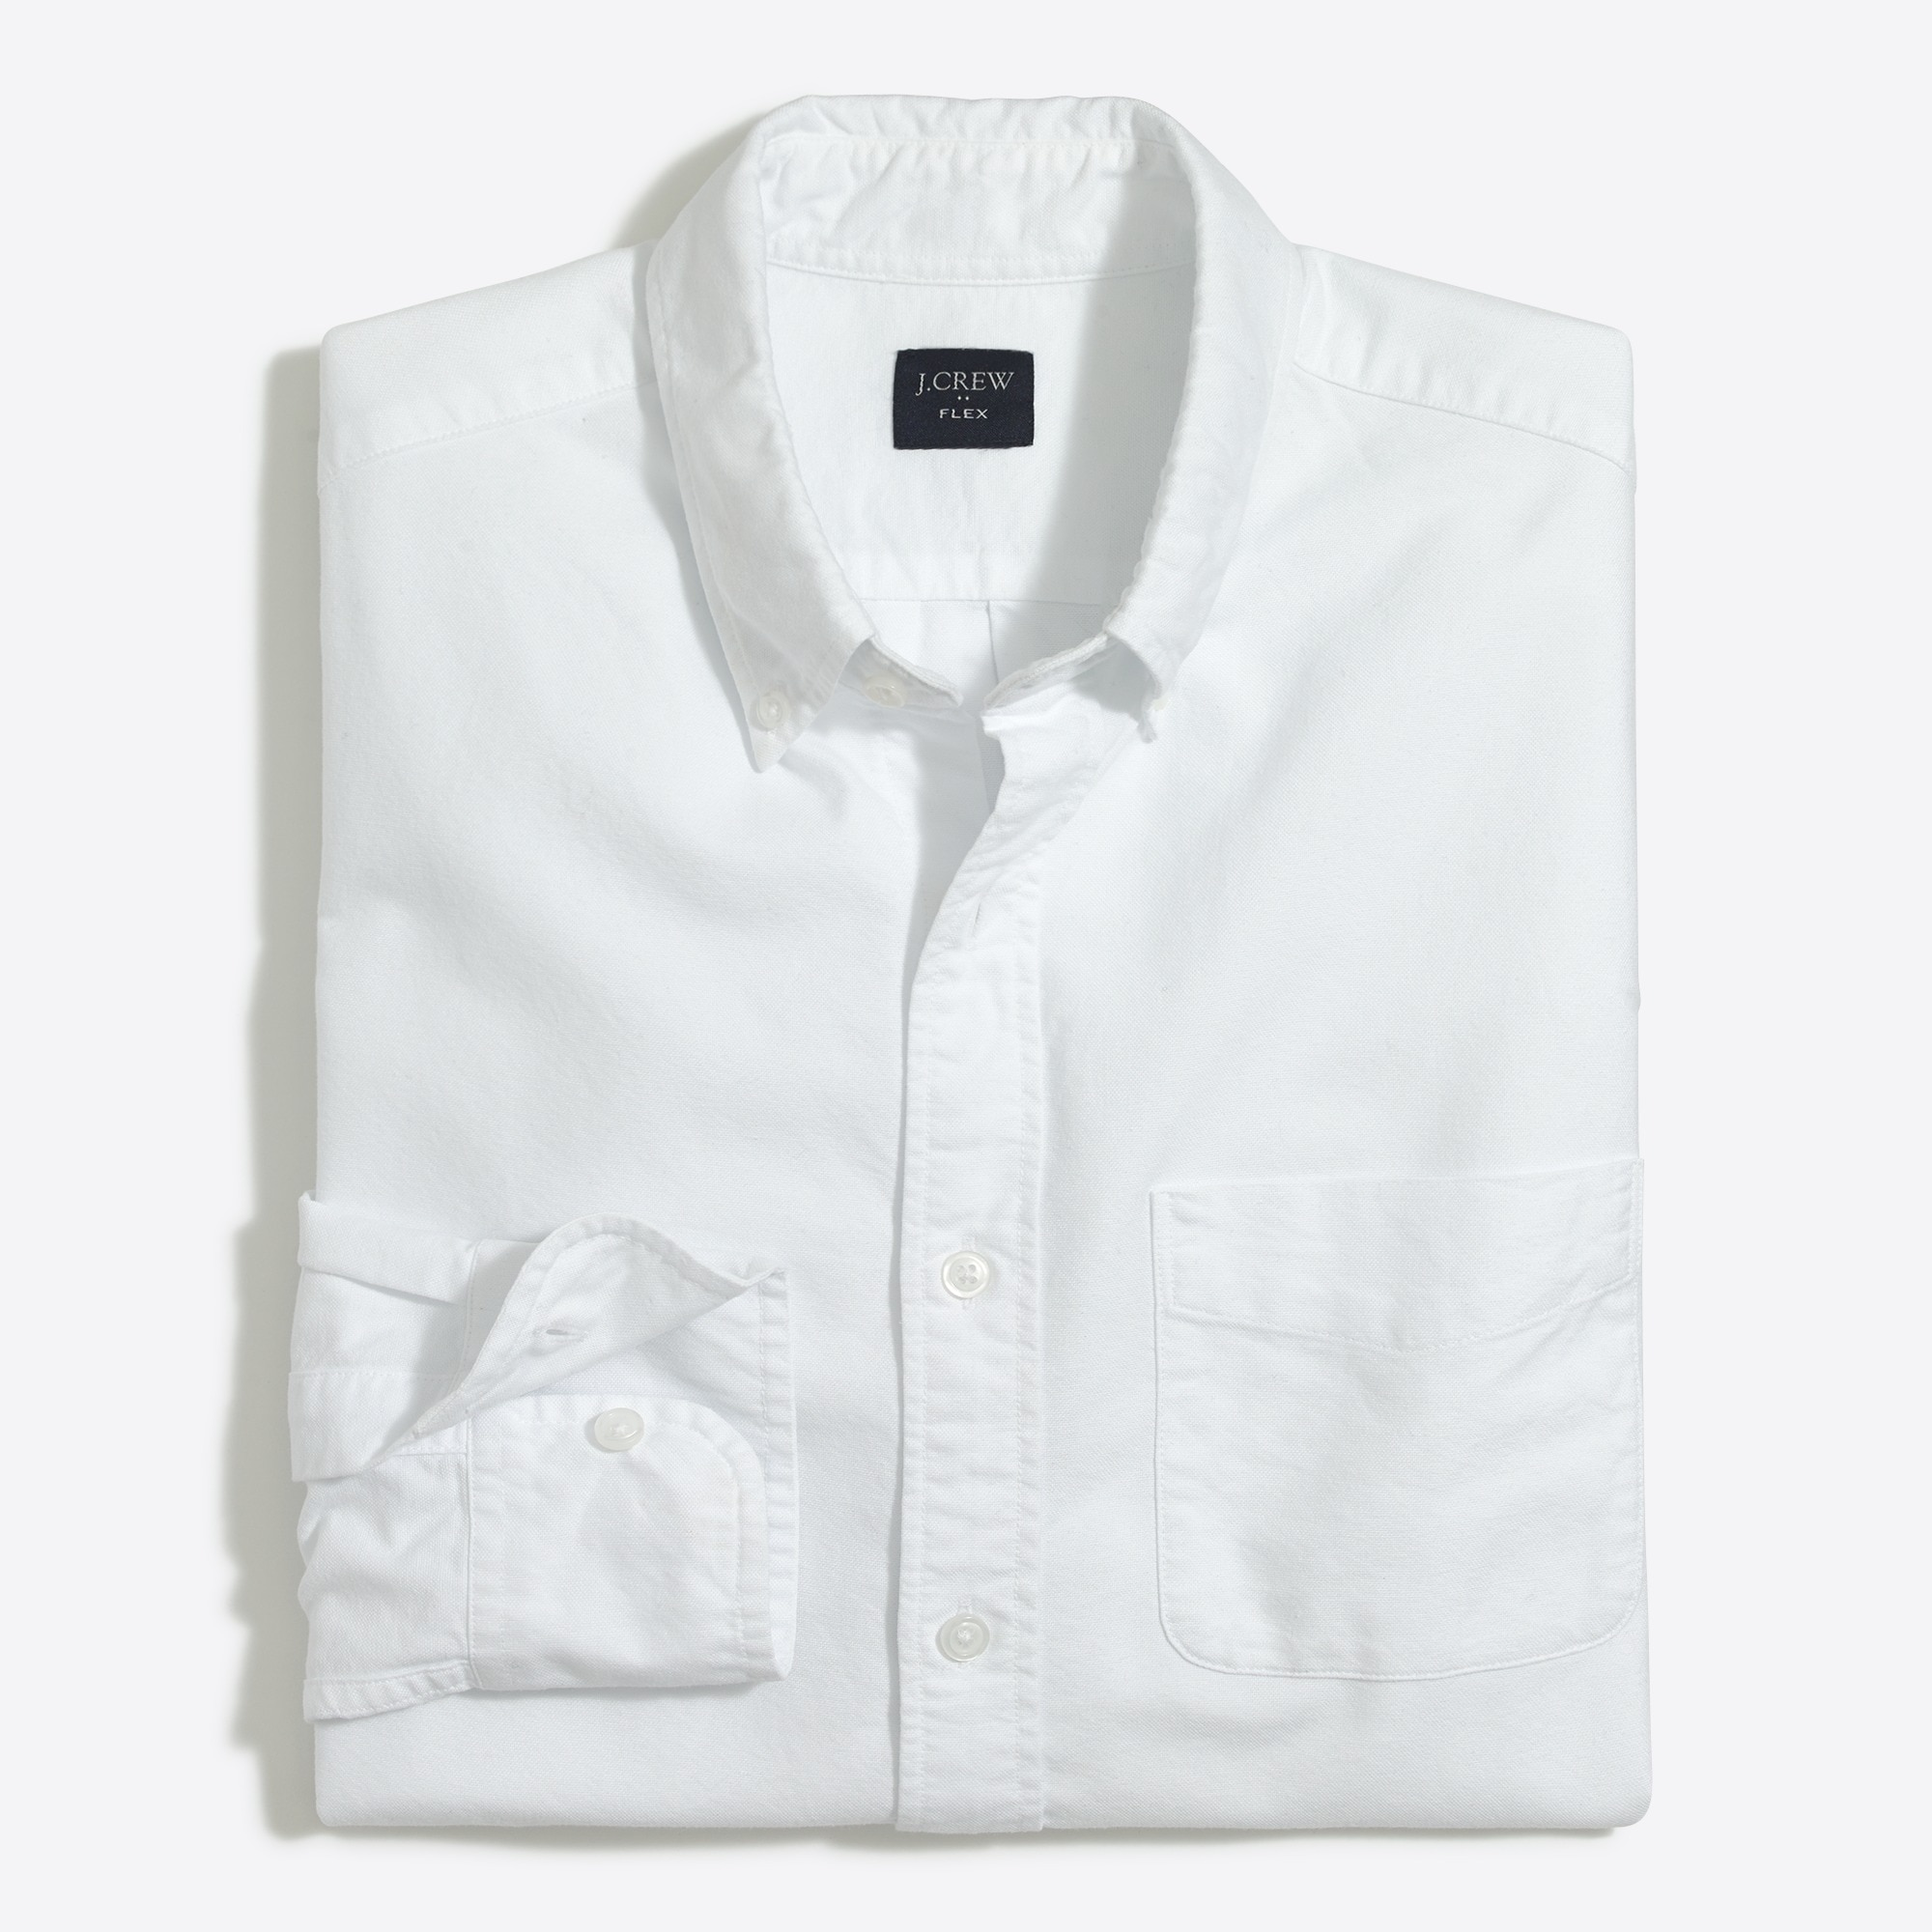 Image 1 for Flex oxford cotton shirt